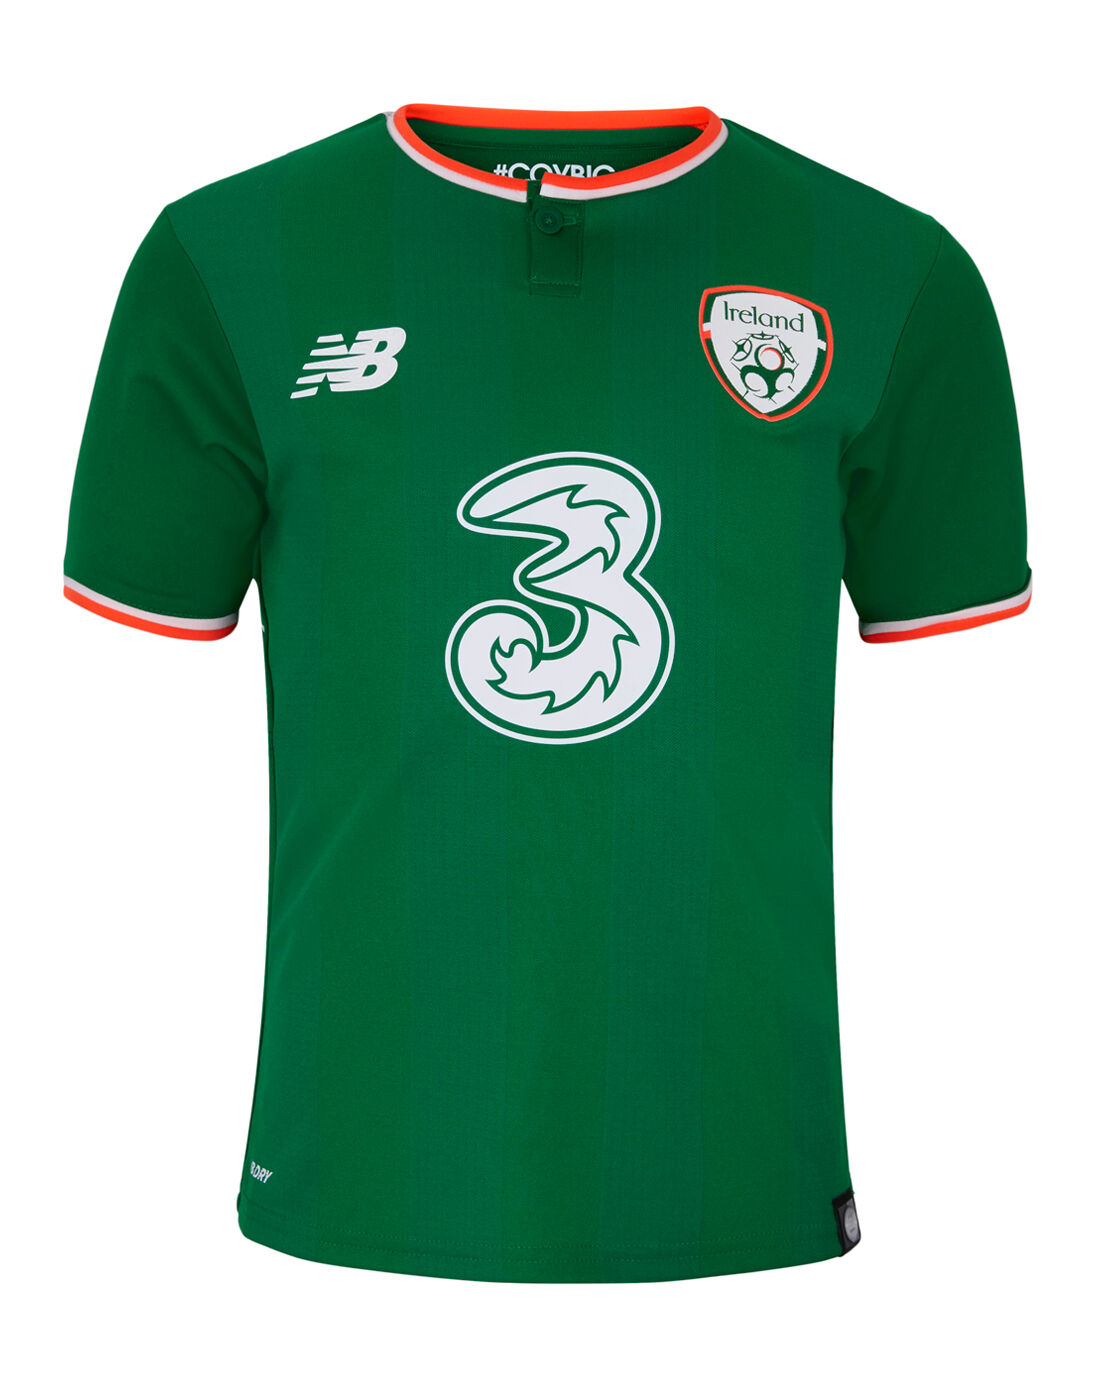 New Balance Kids Ireland Home Jerseys | Life Style Sports